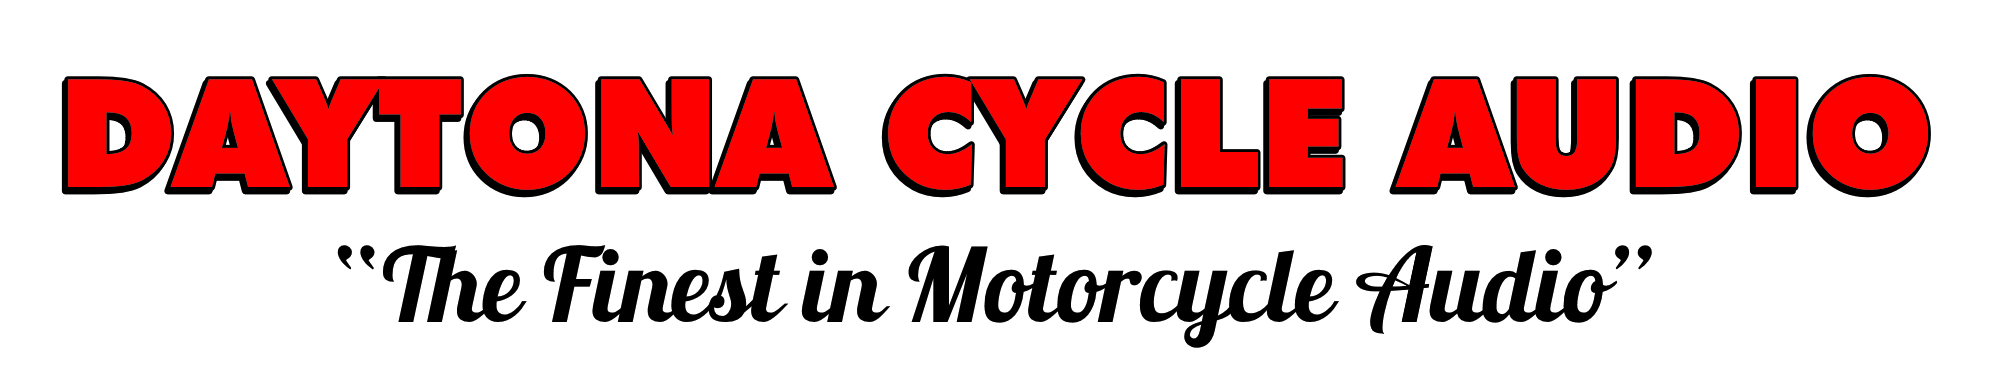 Daytona Cycle Audio